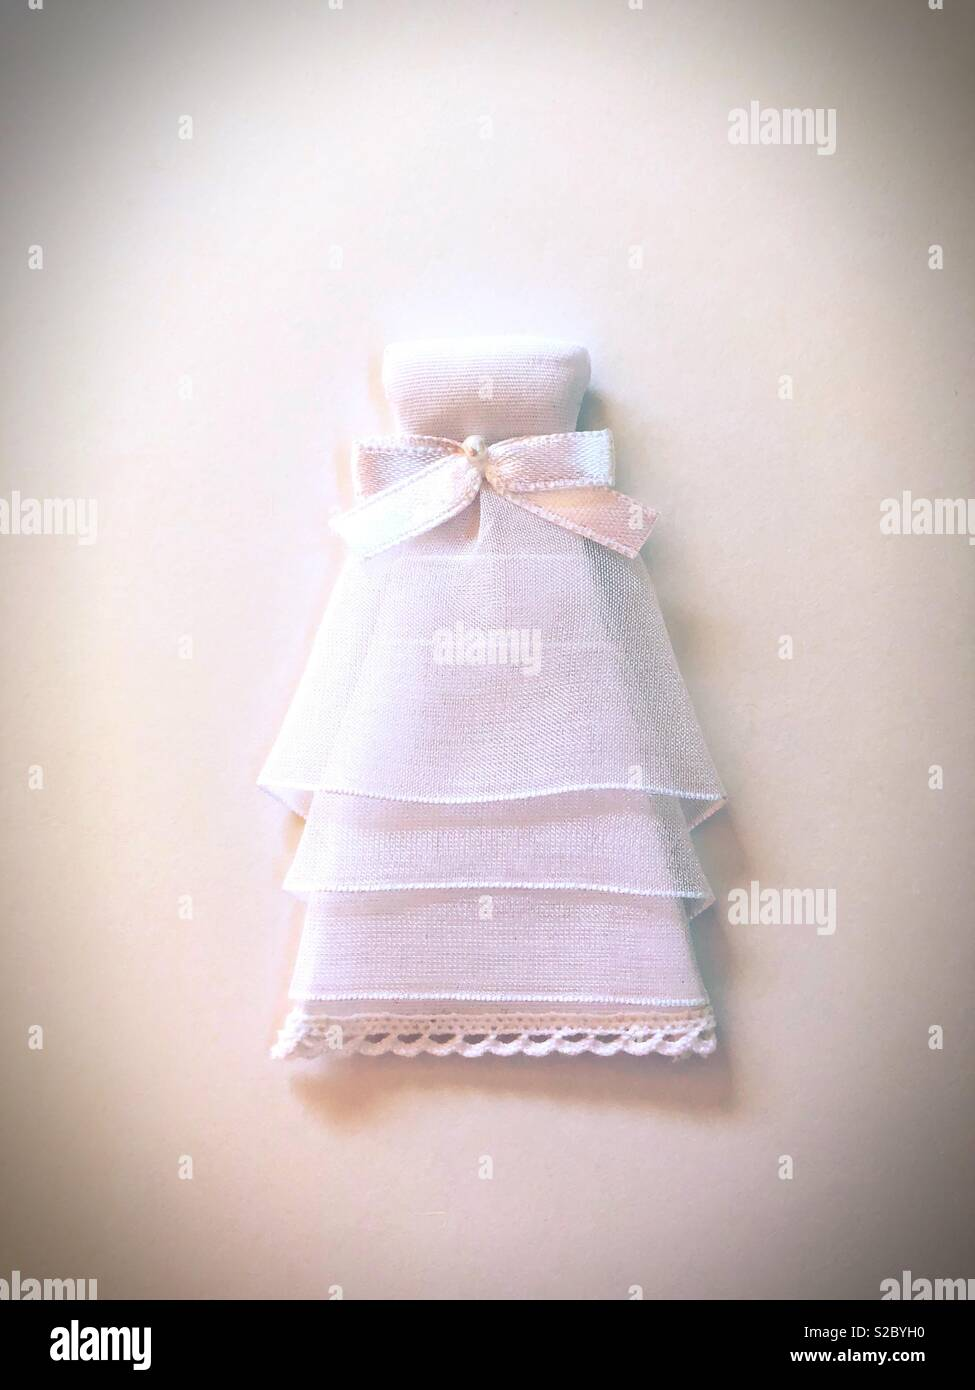 Conceptual: wedding dress. - Stock Image